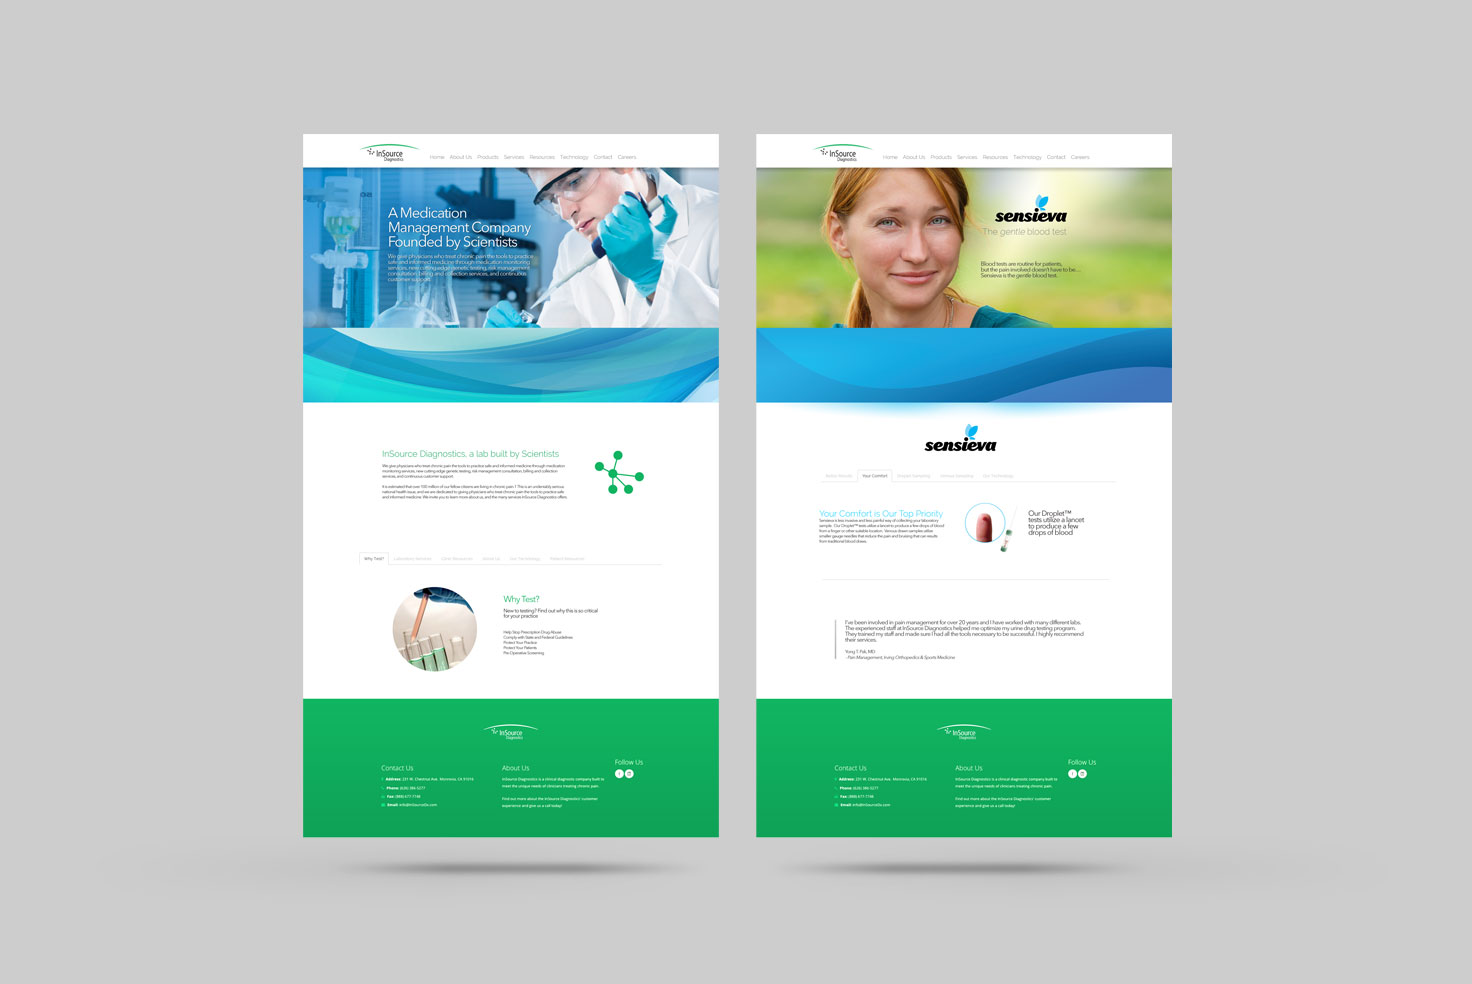 Website designed by FITdesign